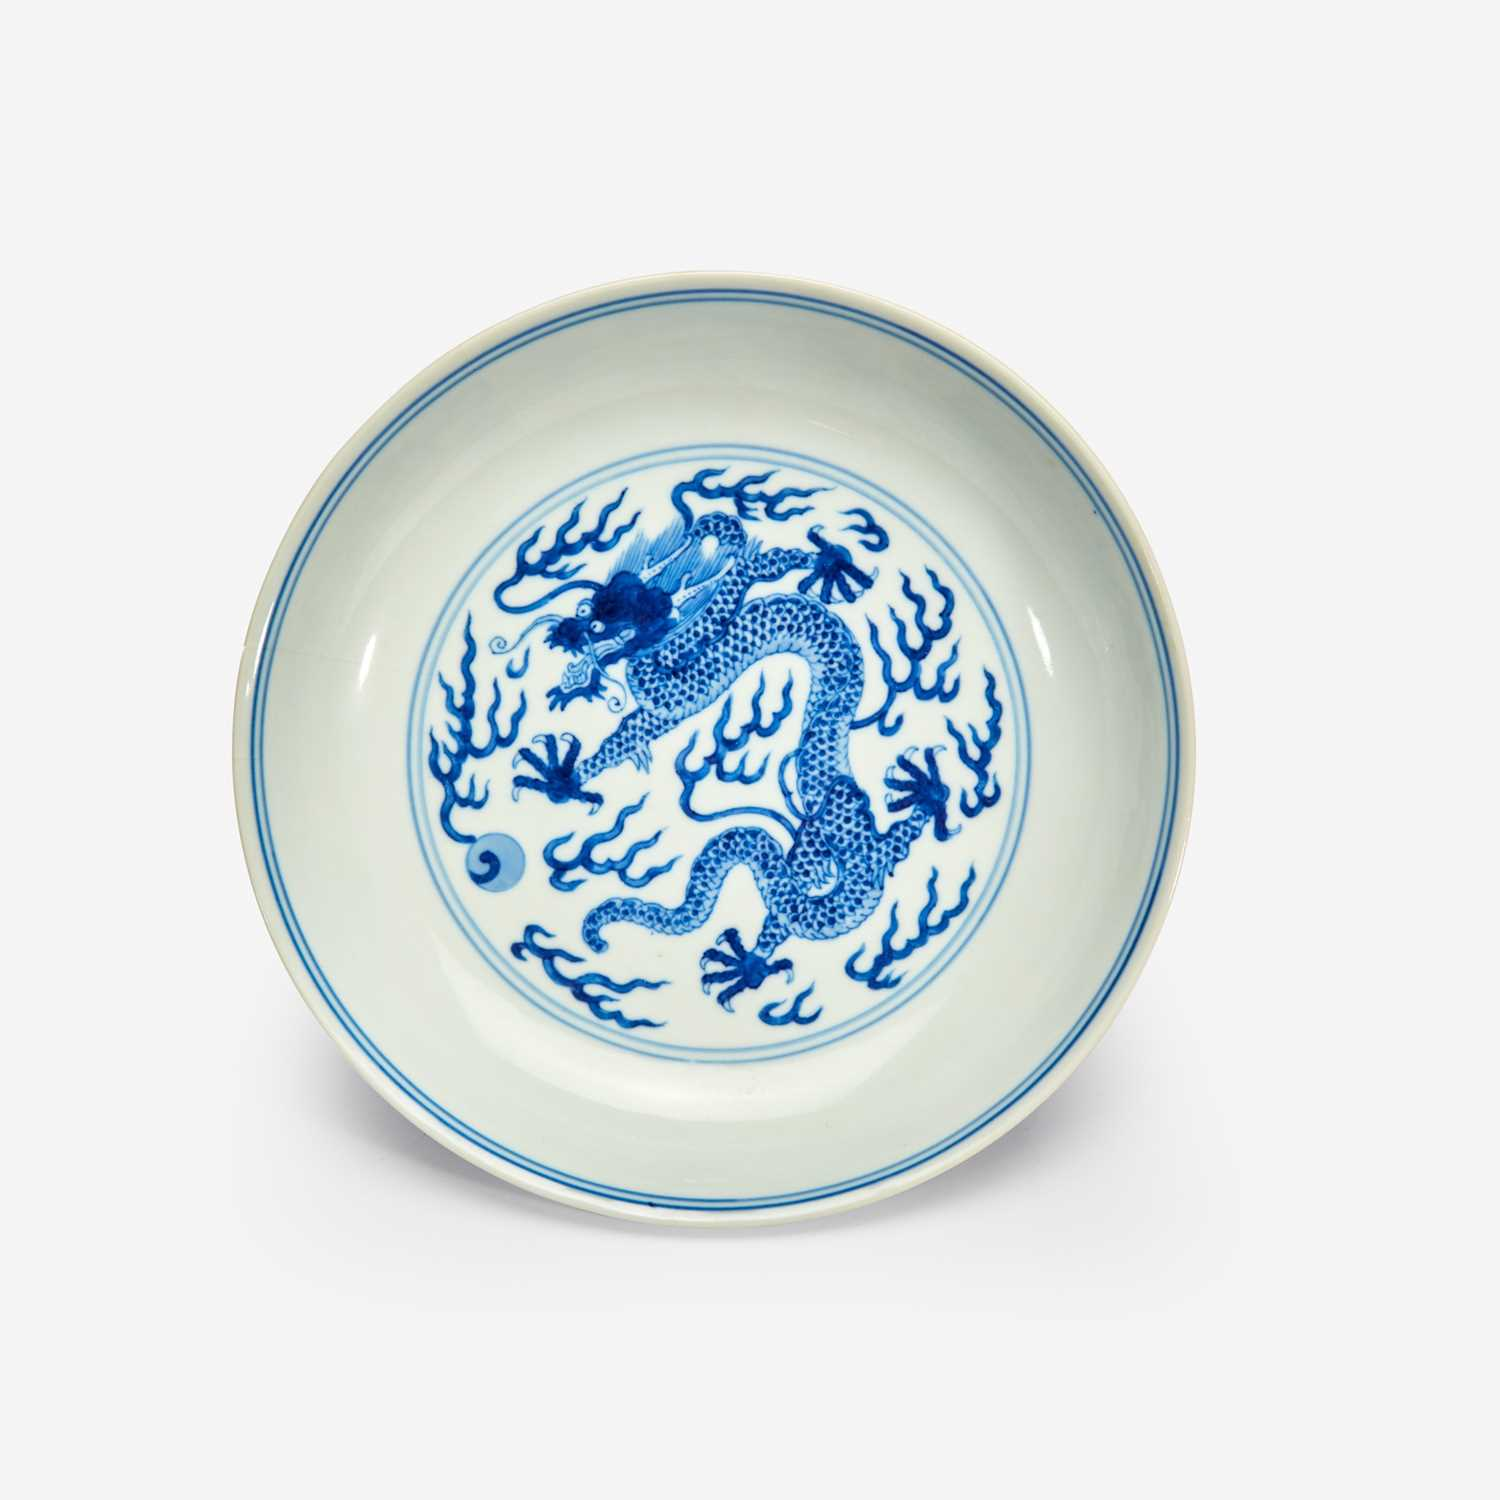 """Lot 24 - A Chinese blue and white porcelain """"Dragon"""" dish 青花龙纹洗"""